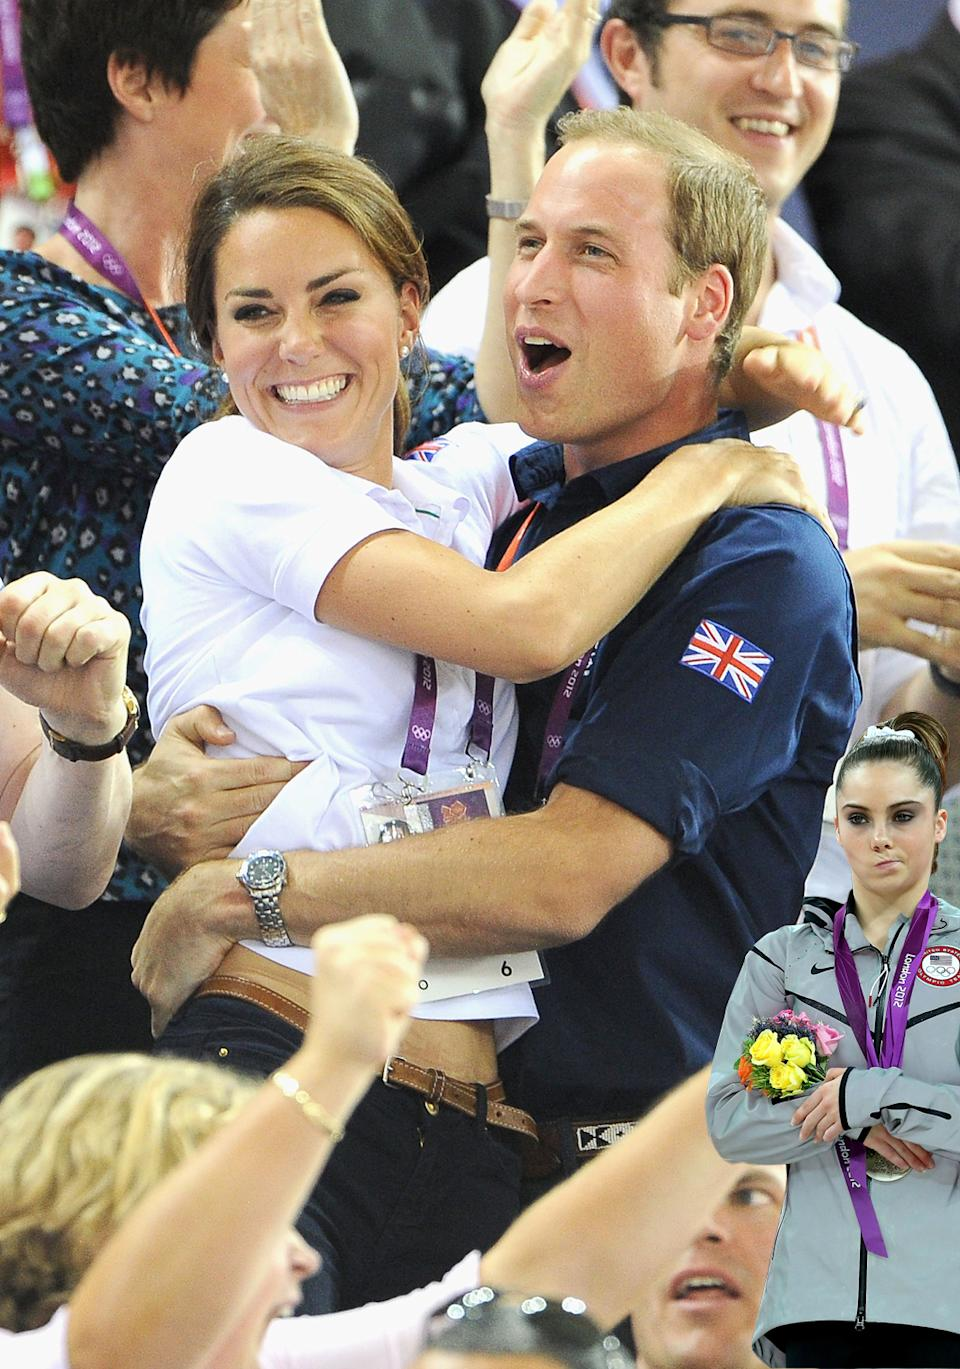 McKayla Maroney is not impressed with Will and Kate's happiness.